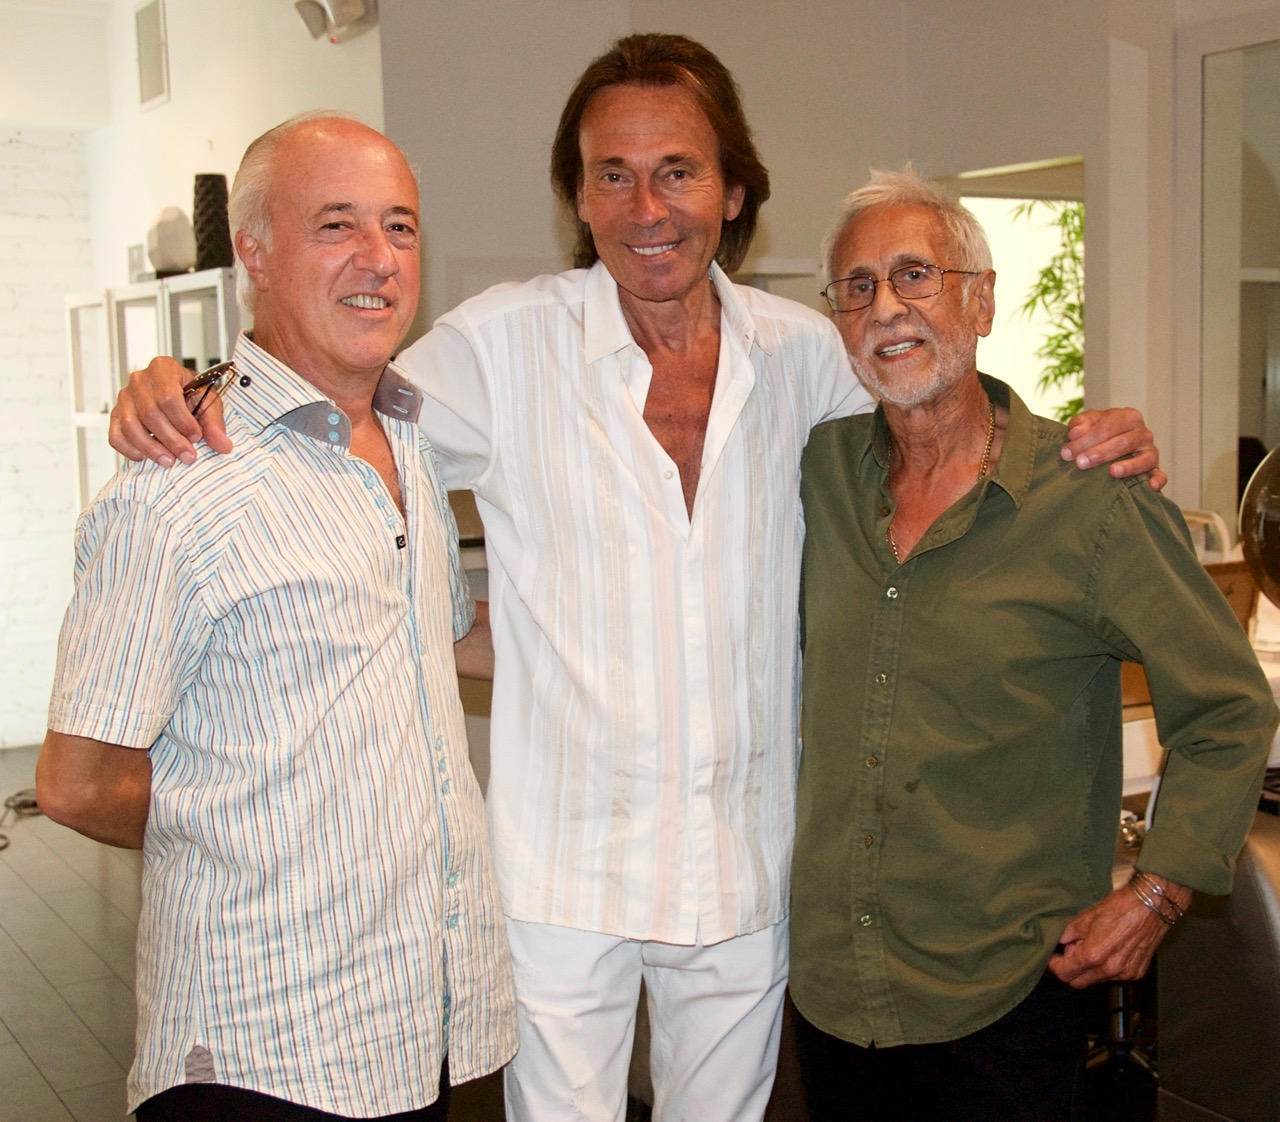 Peter Ciotti, Cristophe, and Antonio Garcia